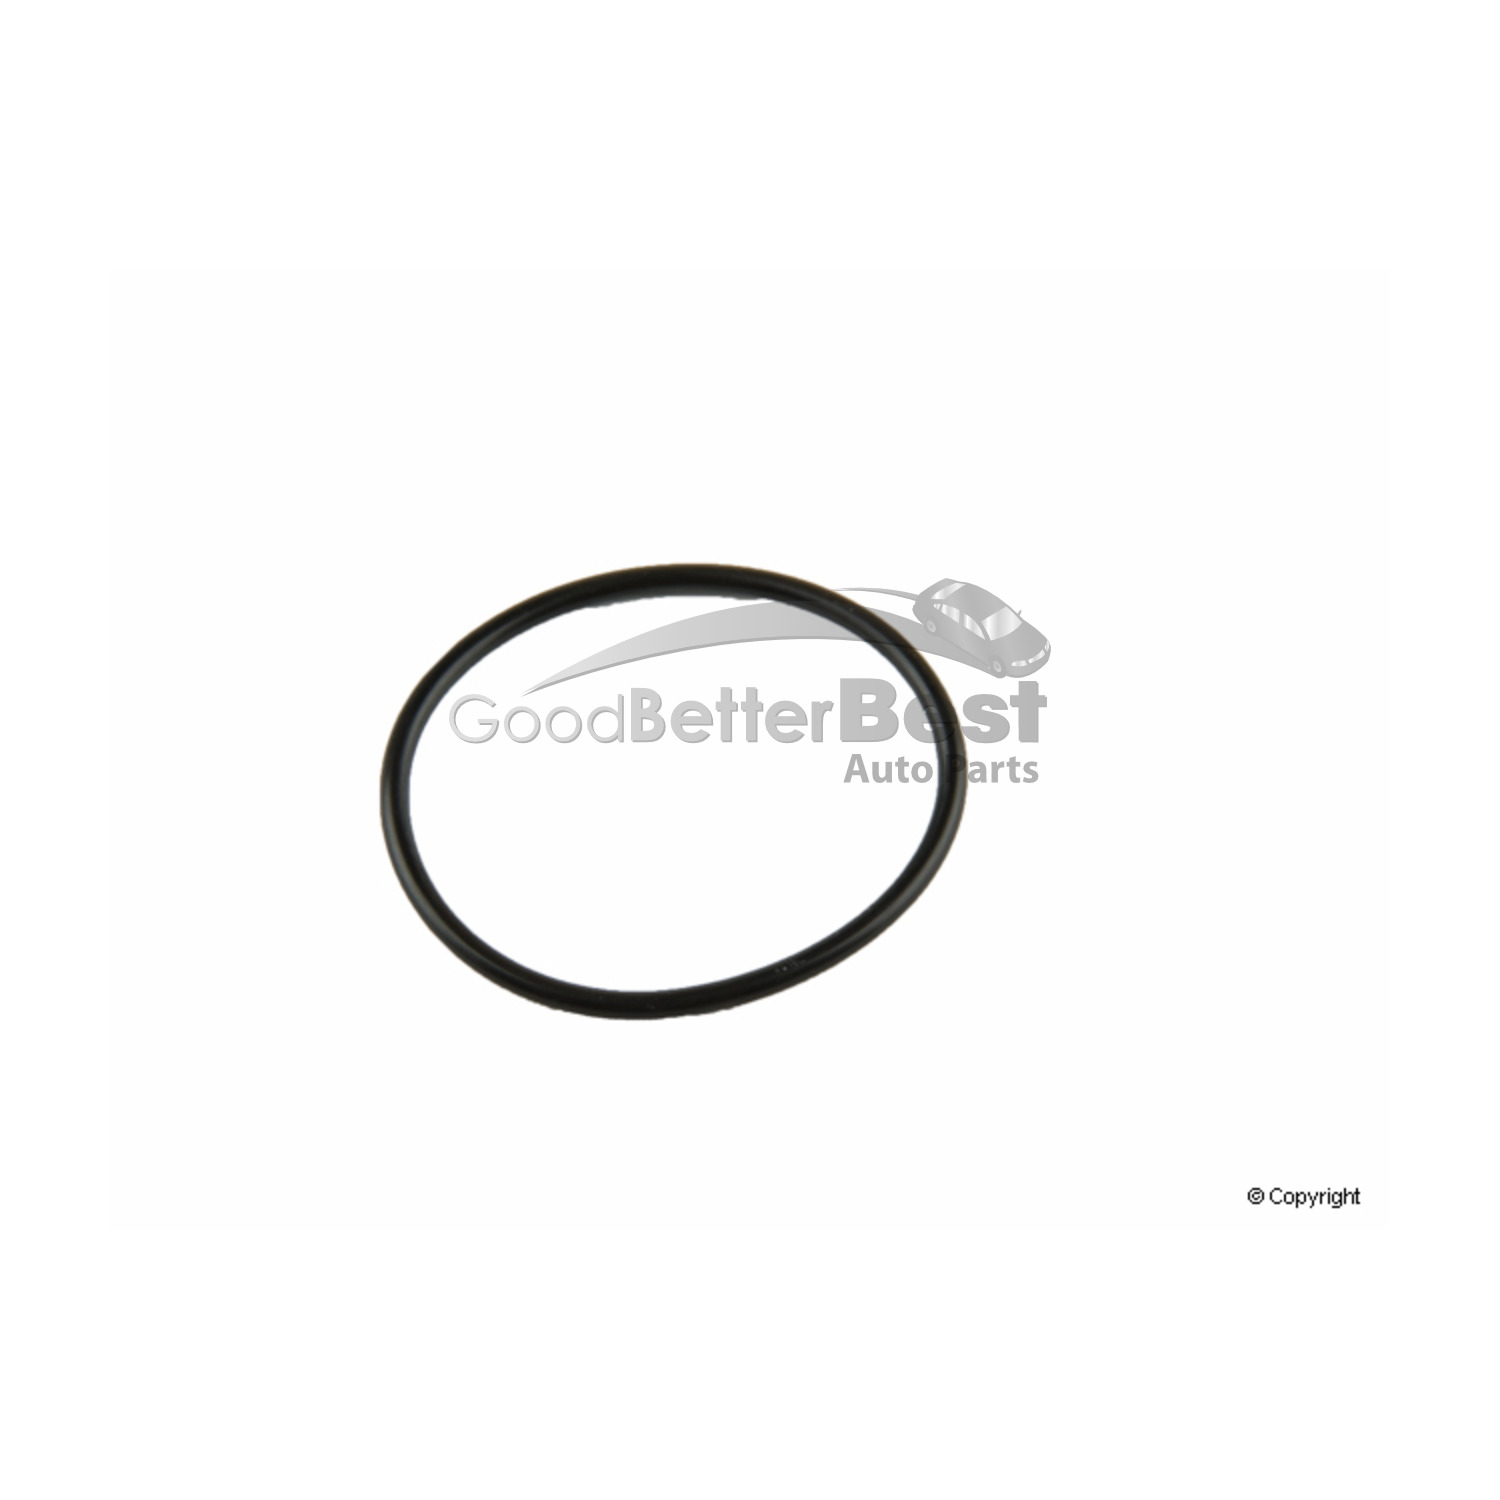 New Zf Automatic Transmission Filter O Ring 0734313088 For Alfa Romeo Saab